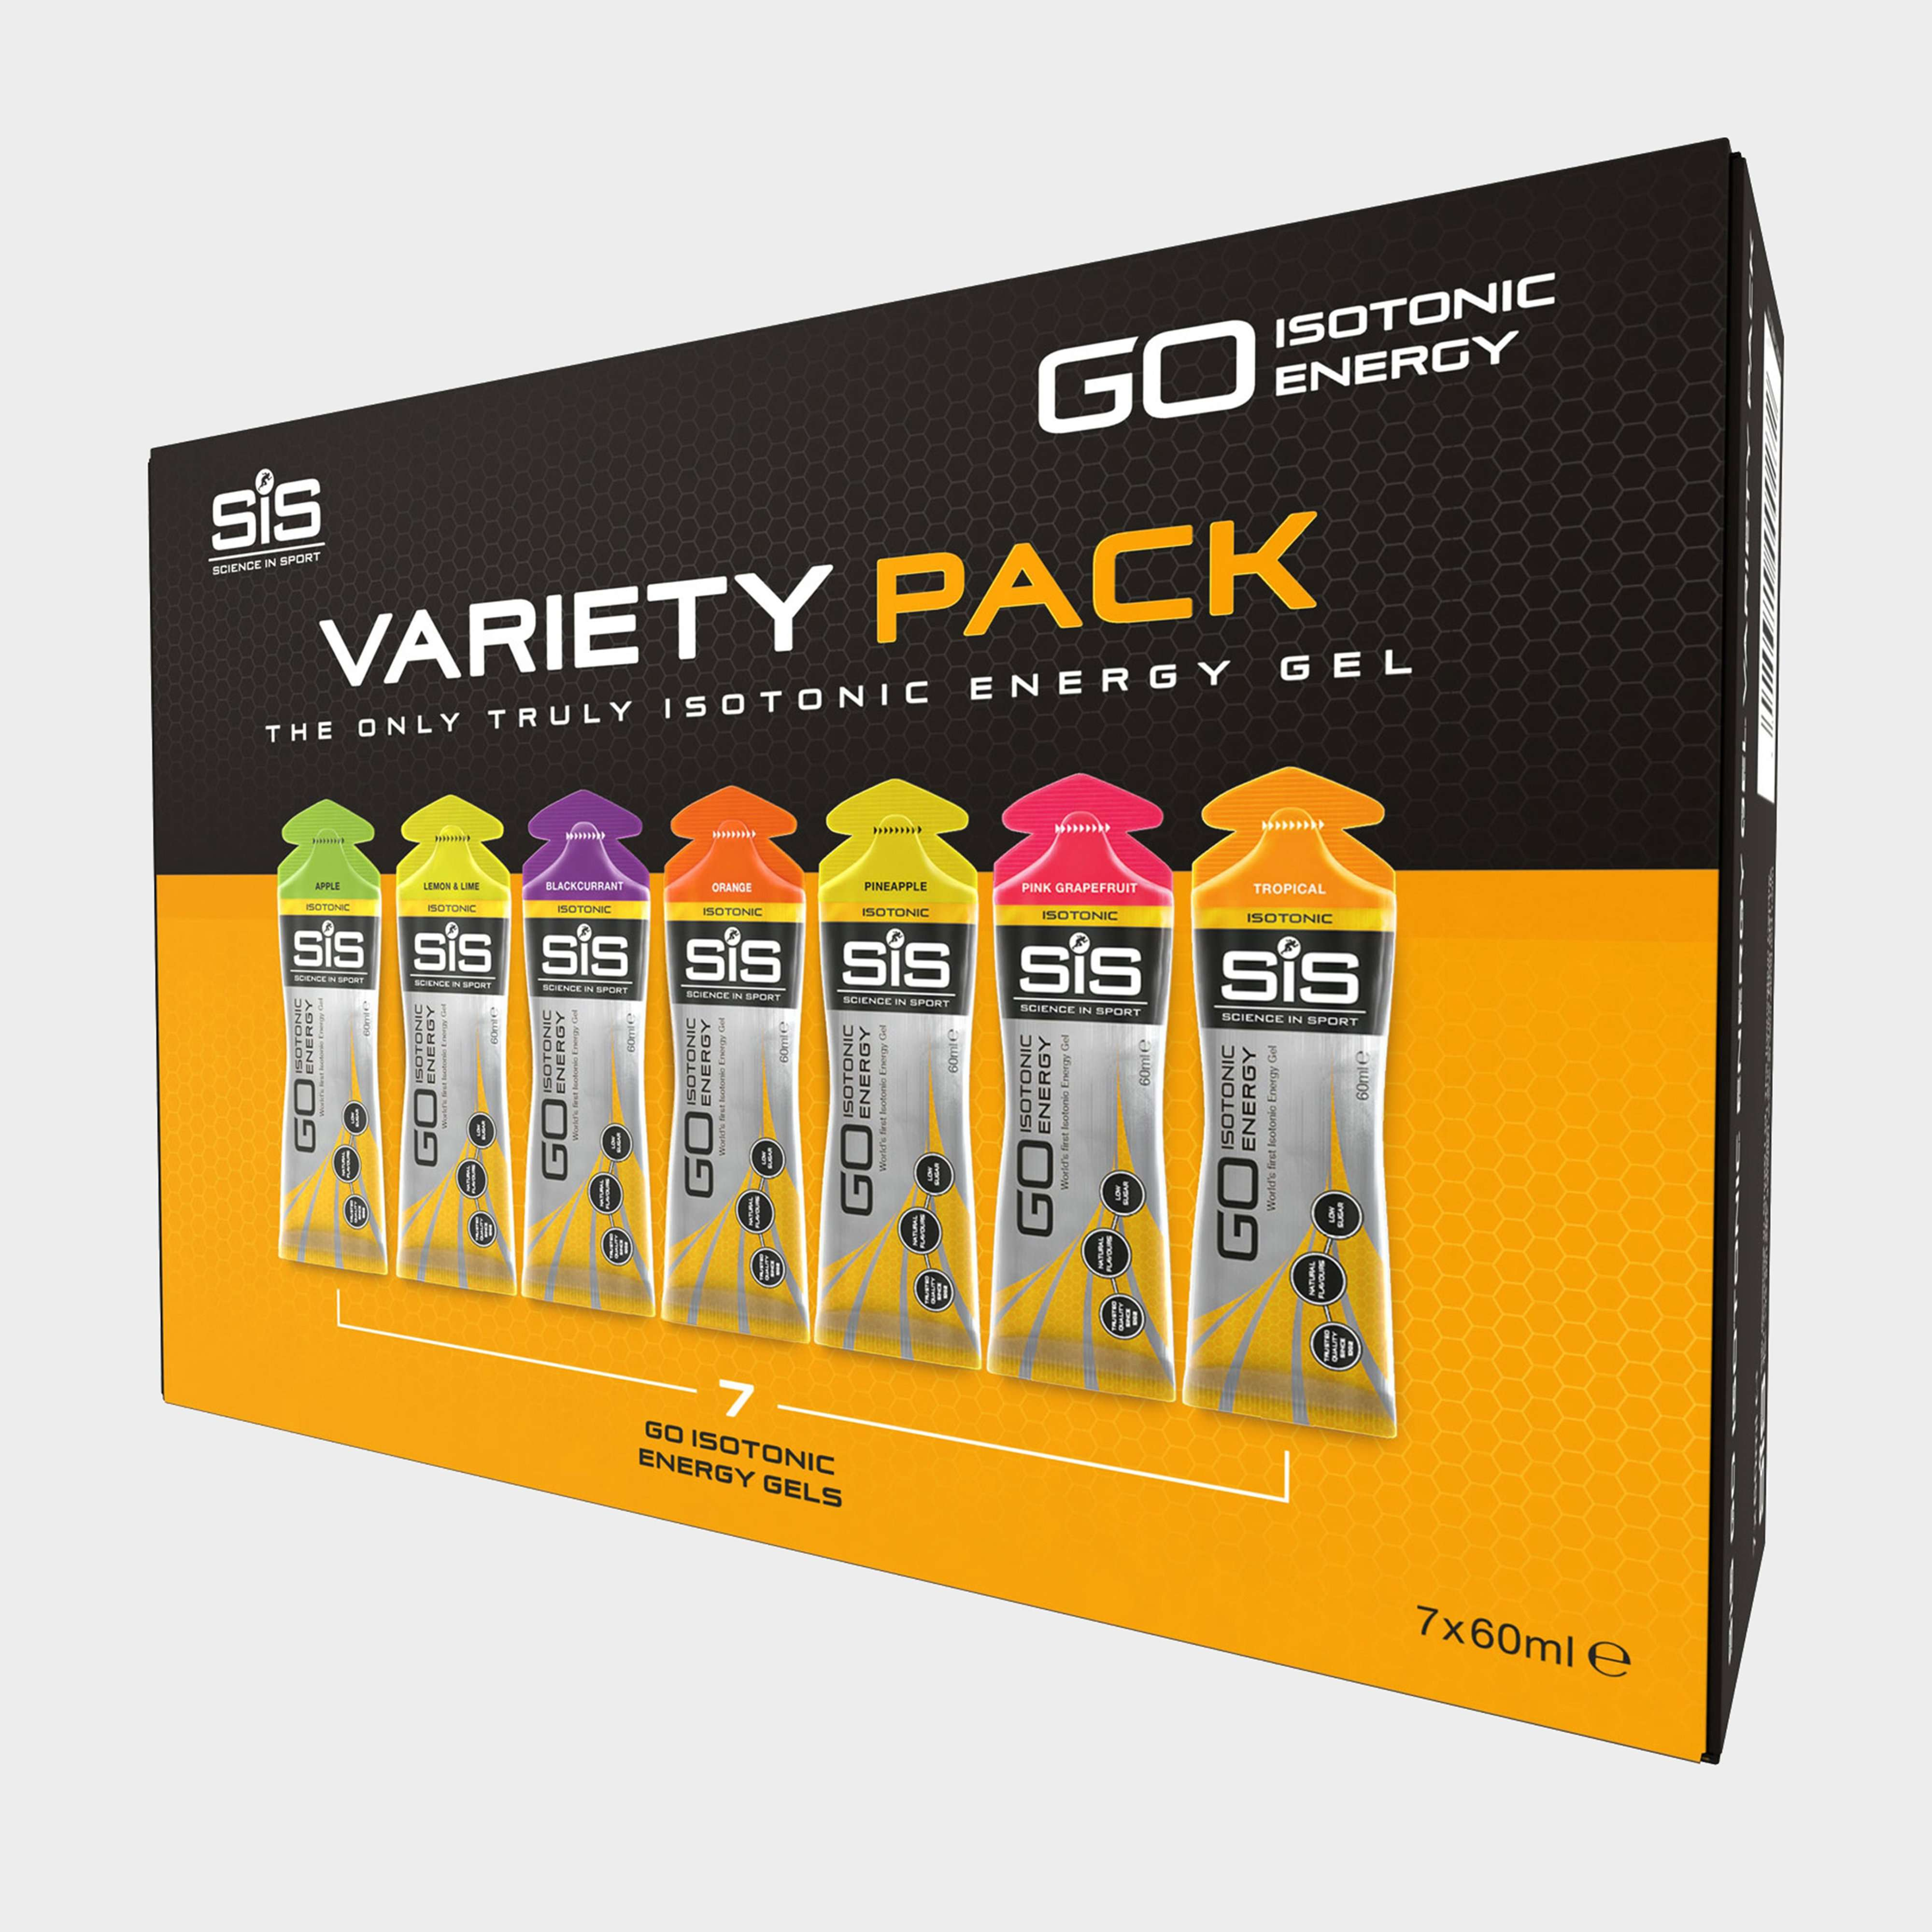 SIS GO Isotonic Gel 7x60ml Variety Pack